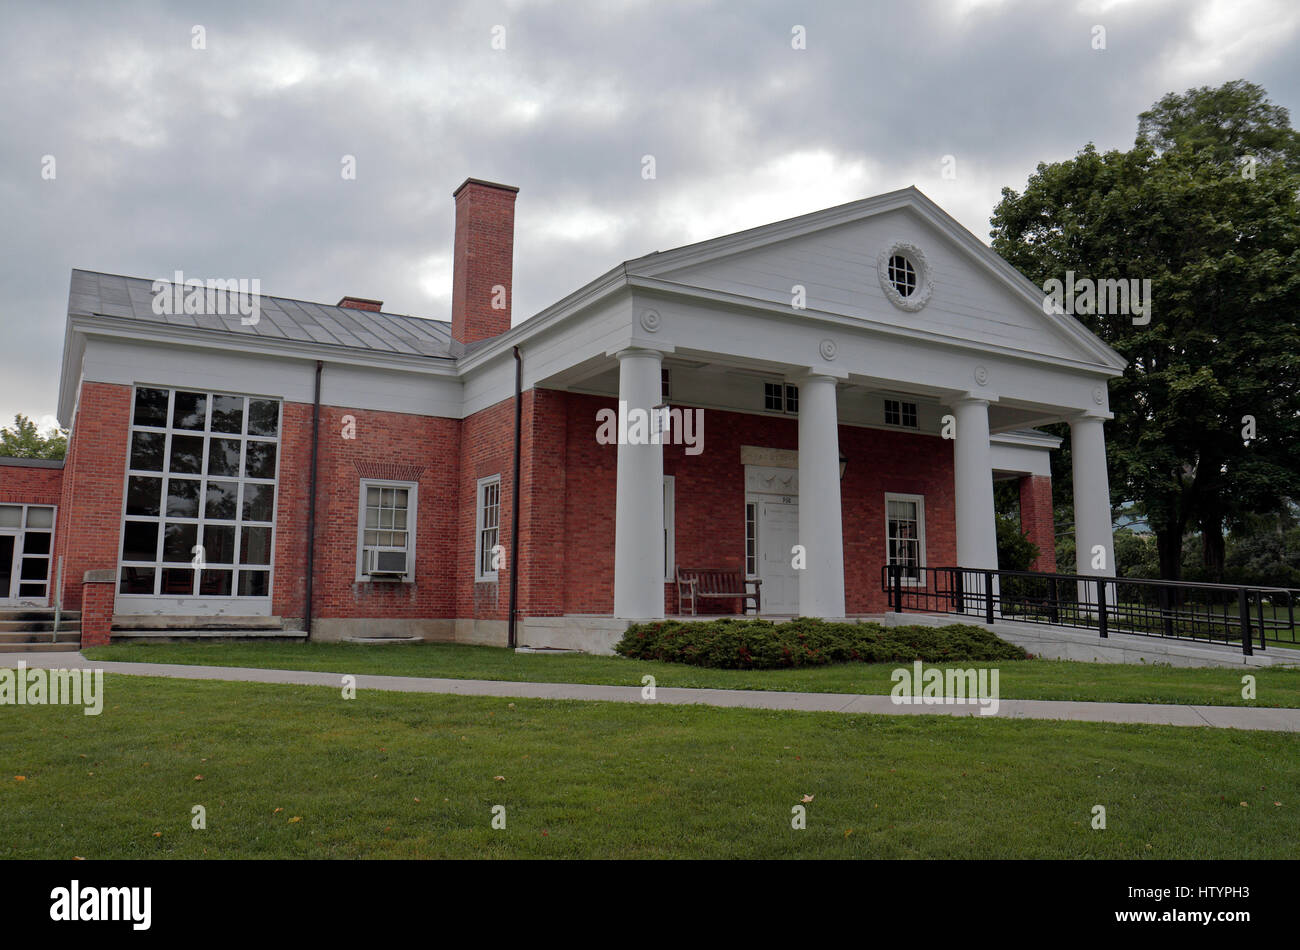 The Faculty House/Alumni Center, Williams College, Williamstown, Berkshire County, Massachusetts, United States. - Stock Image